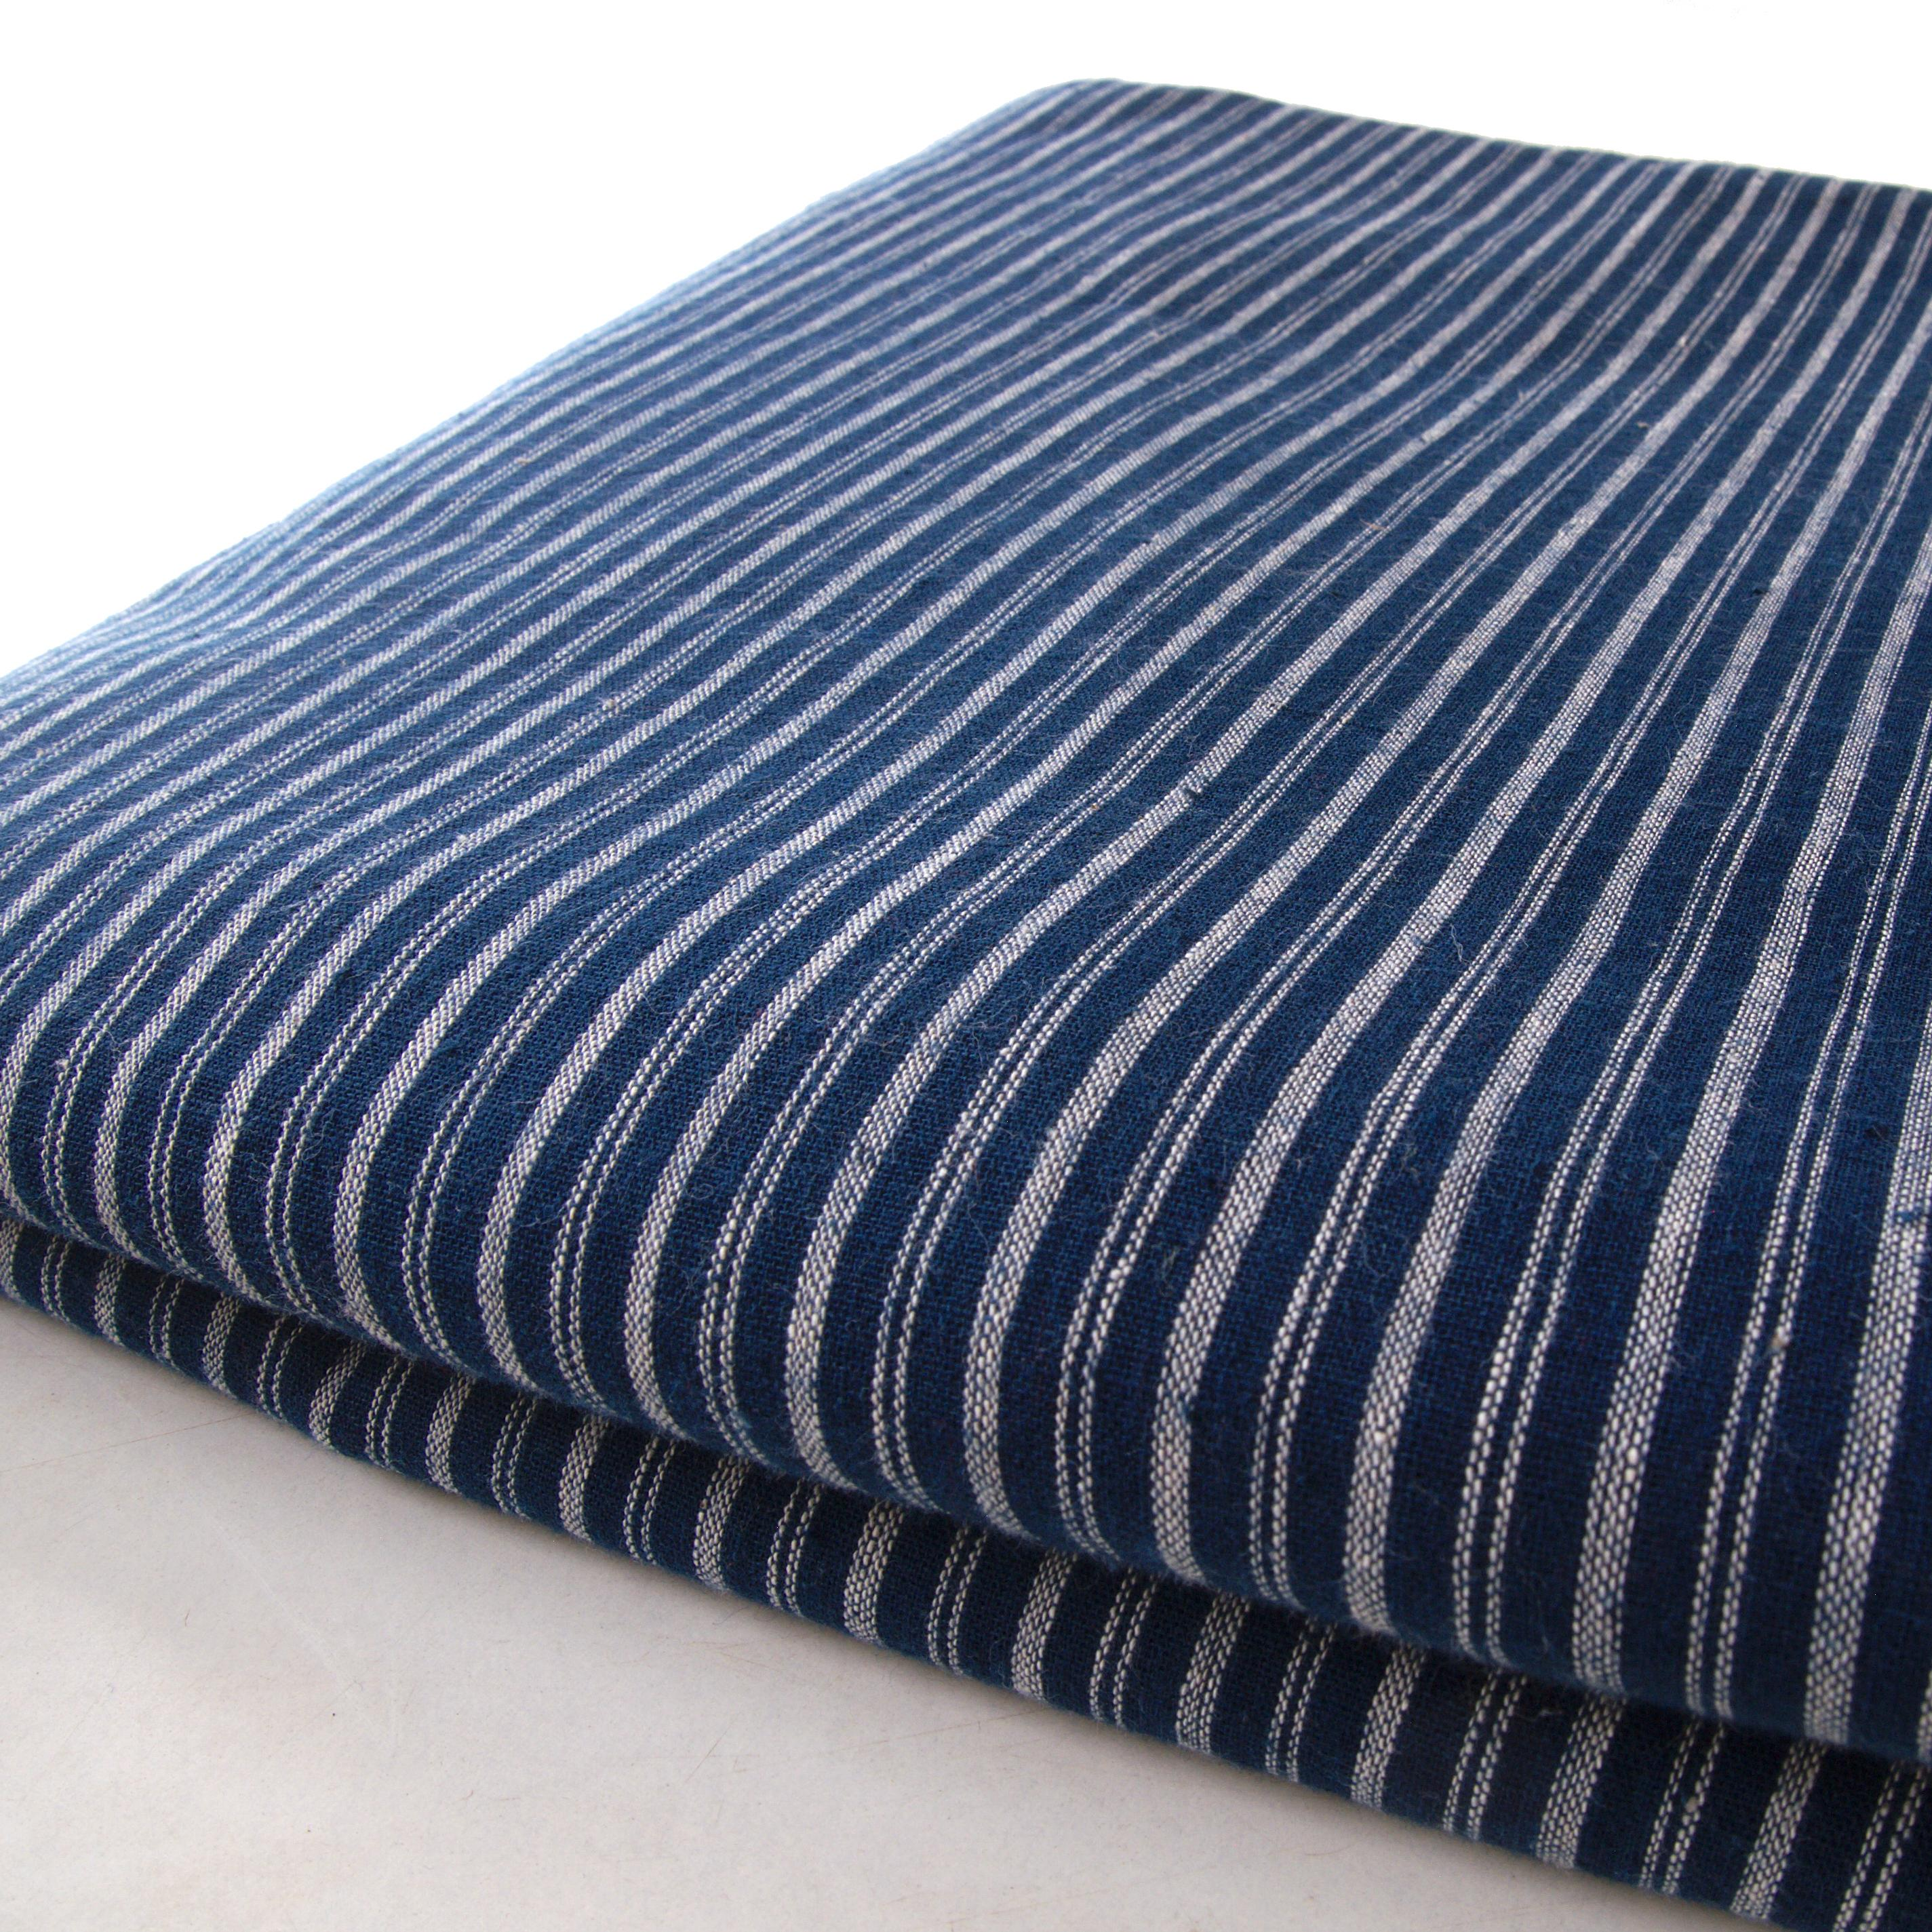 100% Handloom Woven Cotton - Double Stripes - Natural Indigo Warp & Weft, White Warp - Bolt